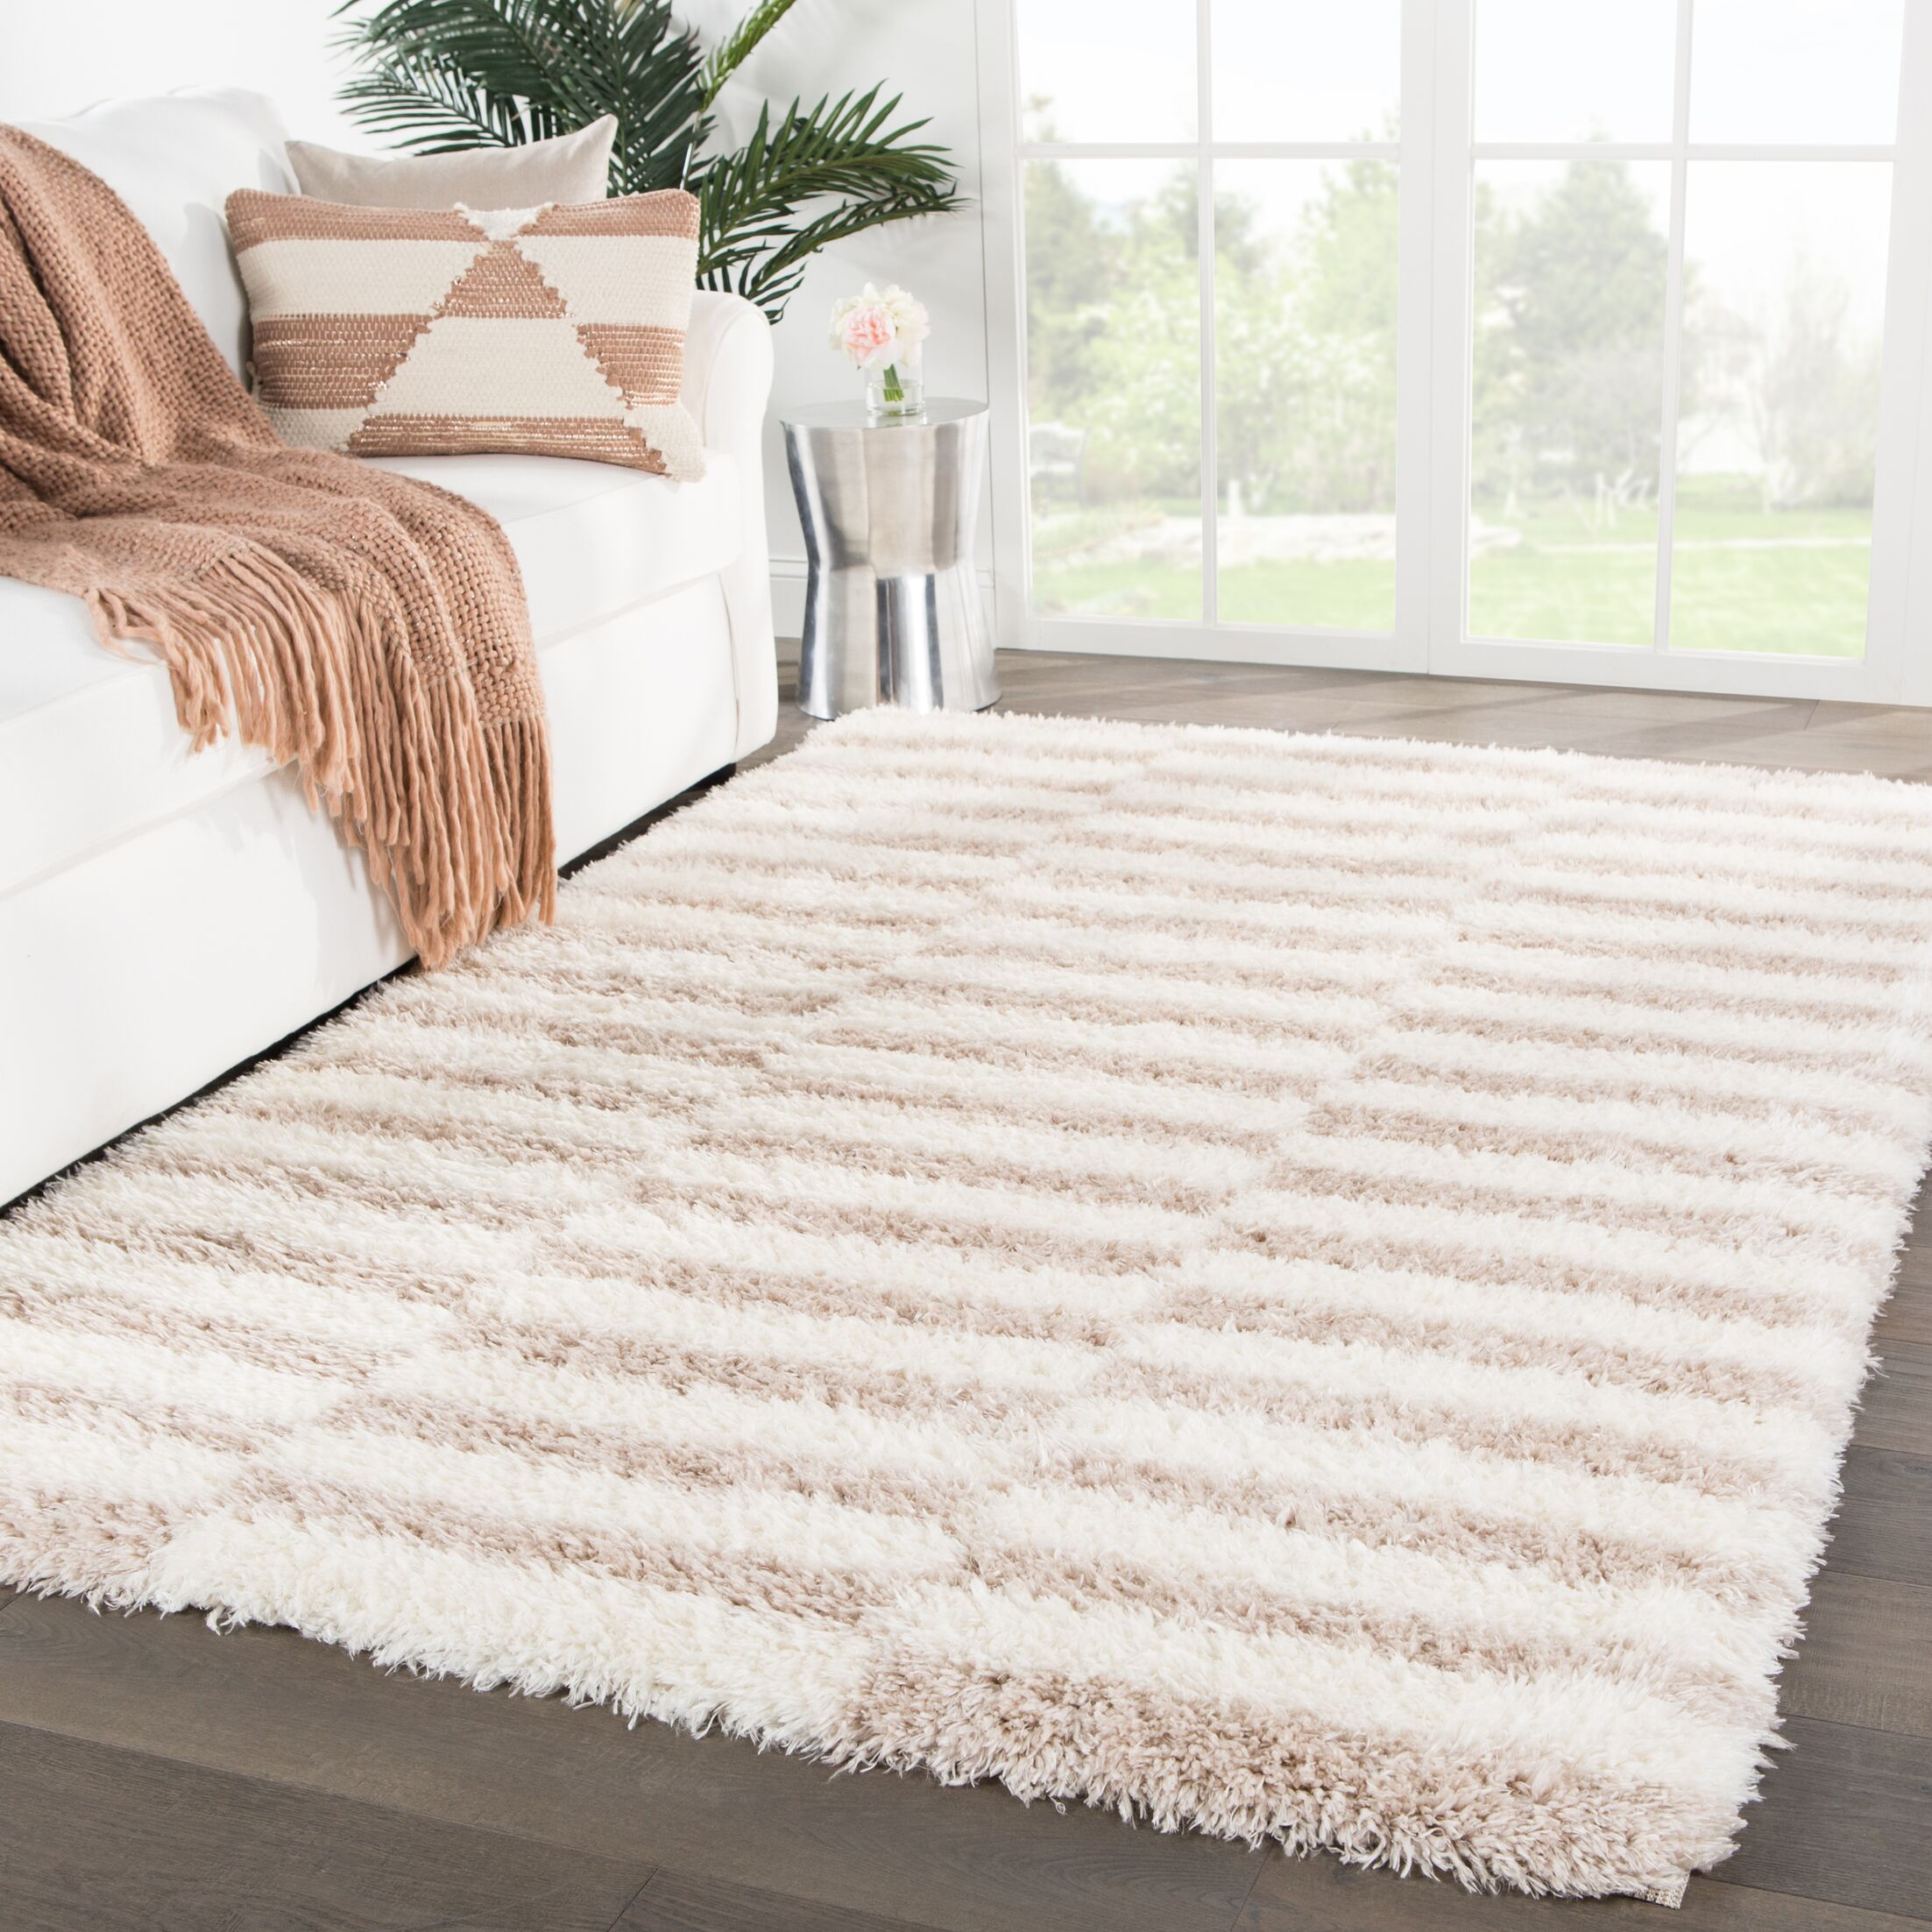 Taconite Stripes Ivory/Brown Area Rug Rug Size: Rectangle 4' x 6'